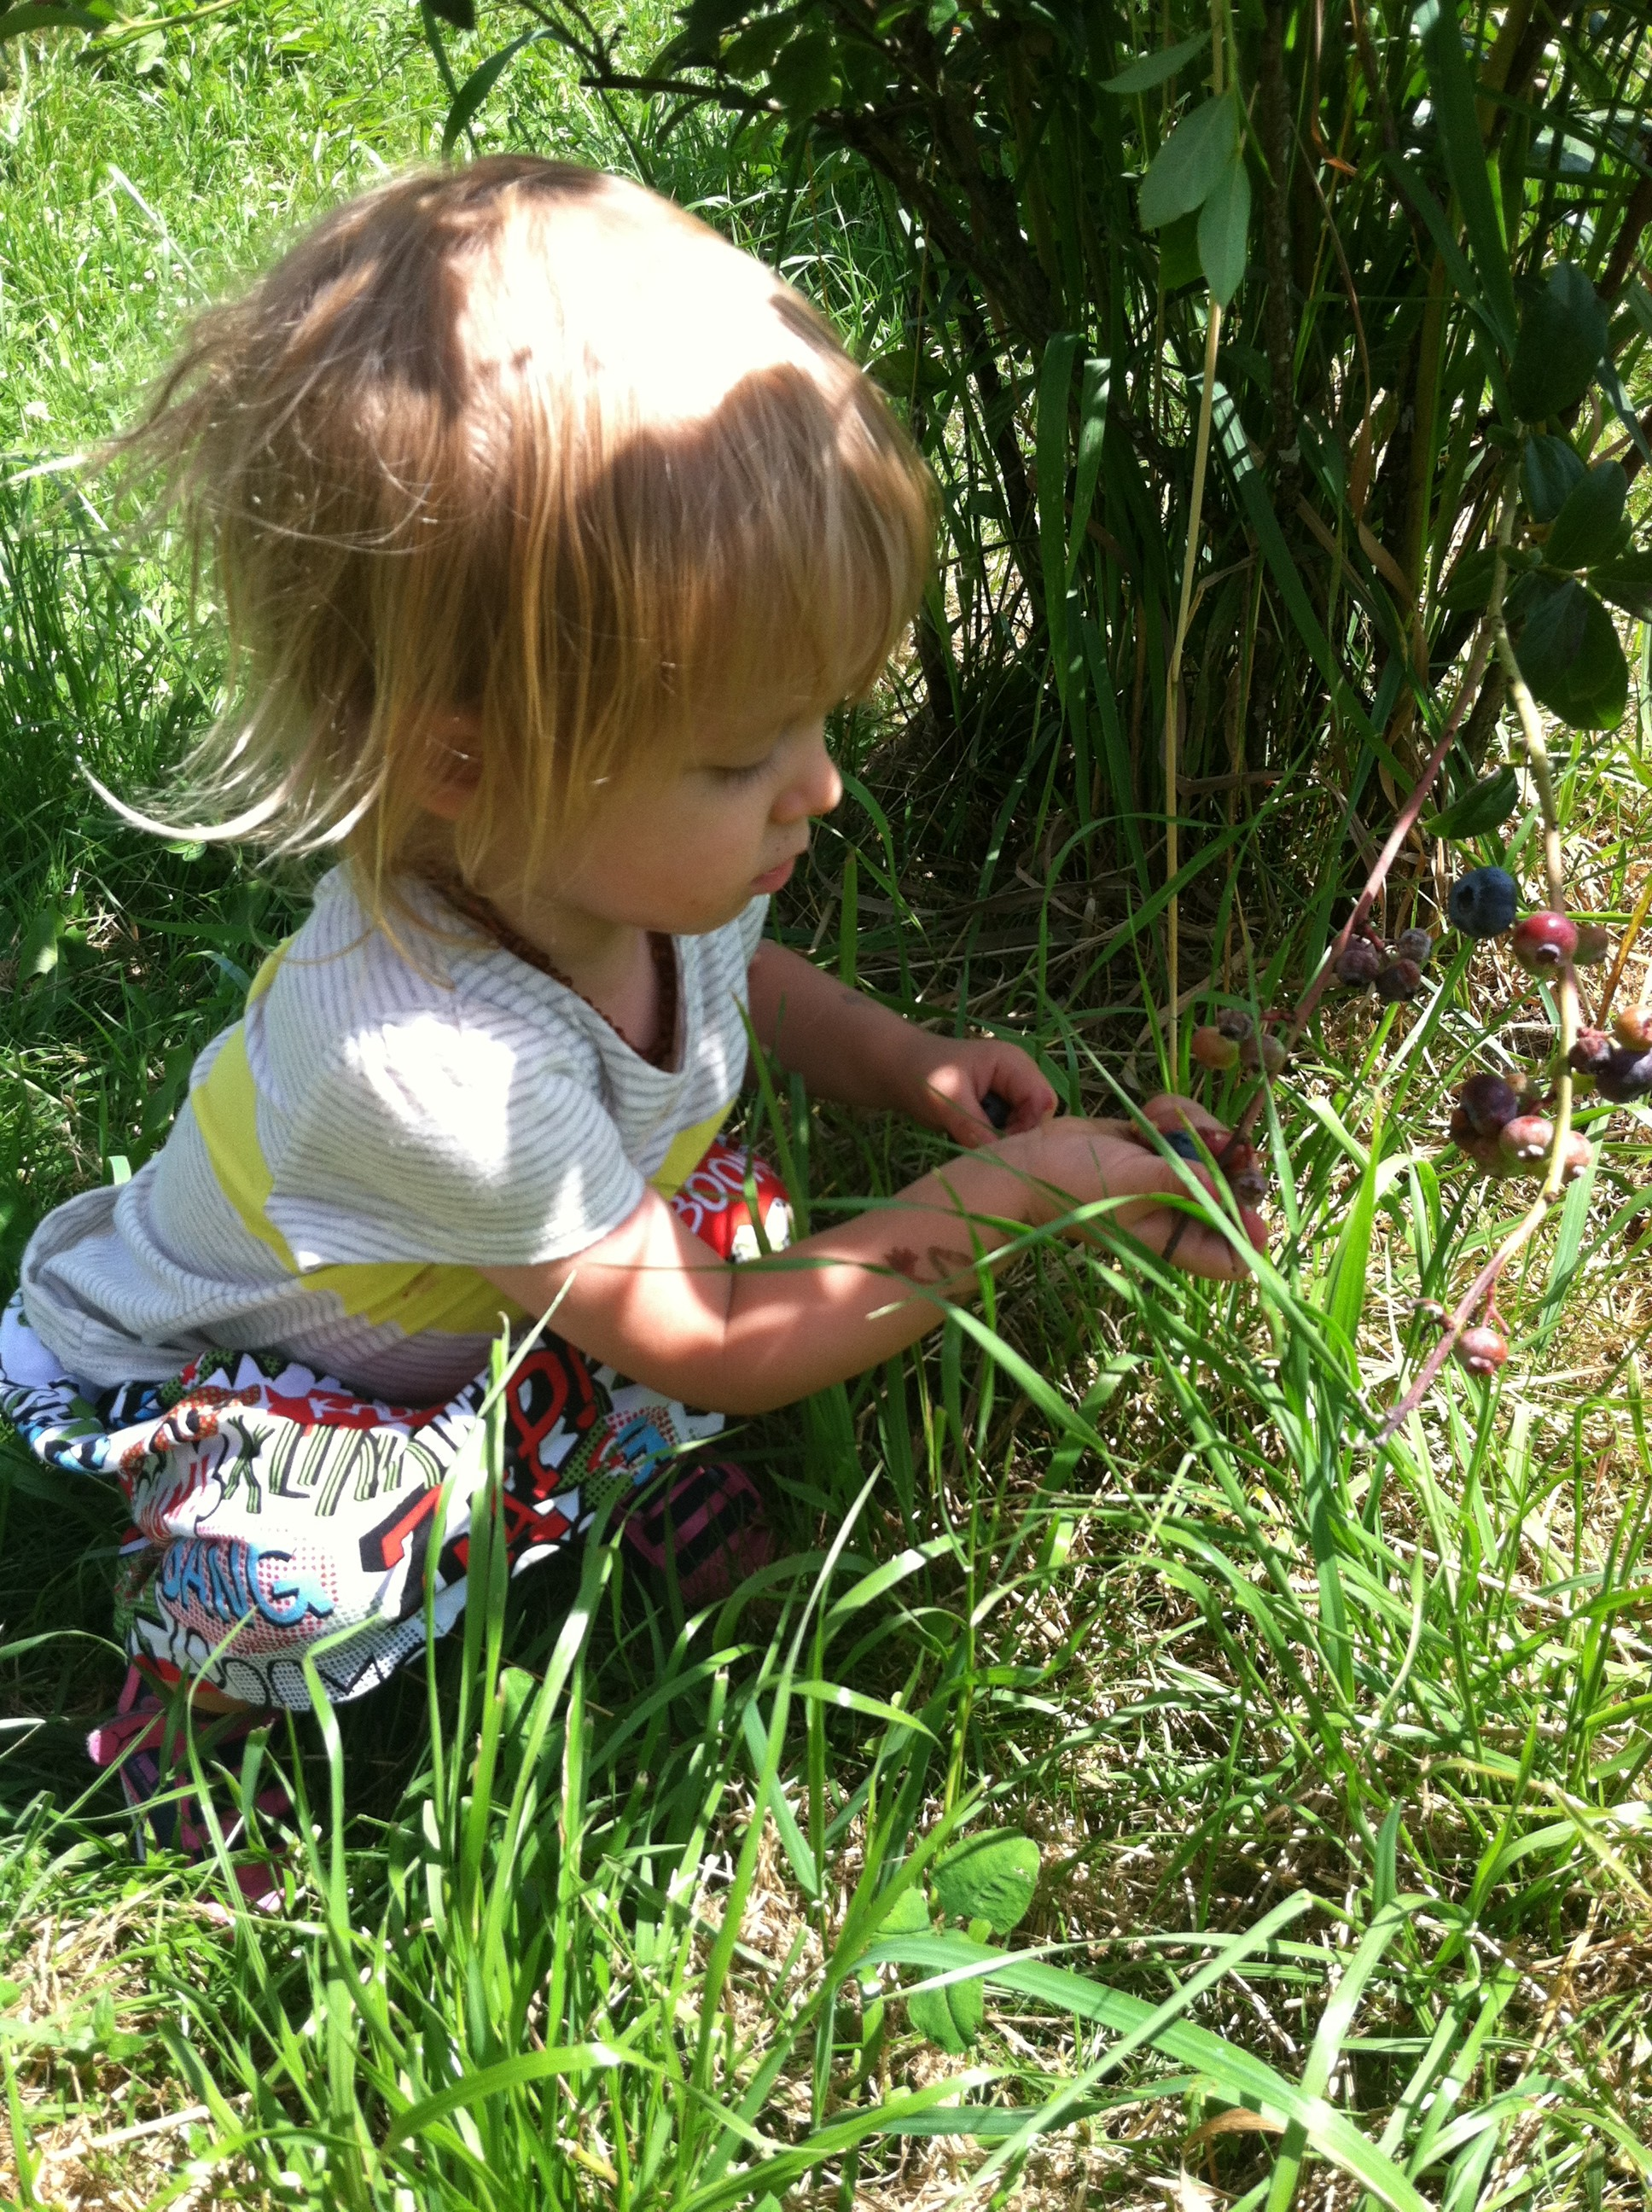 ... picking berries and I think this little berry muncher enjoyed herself